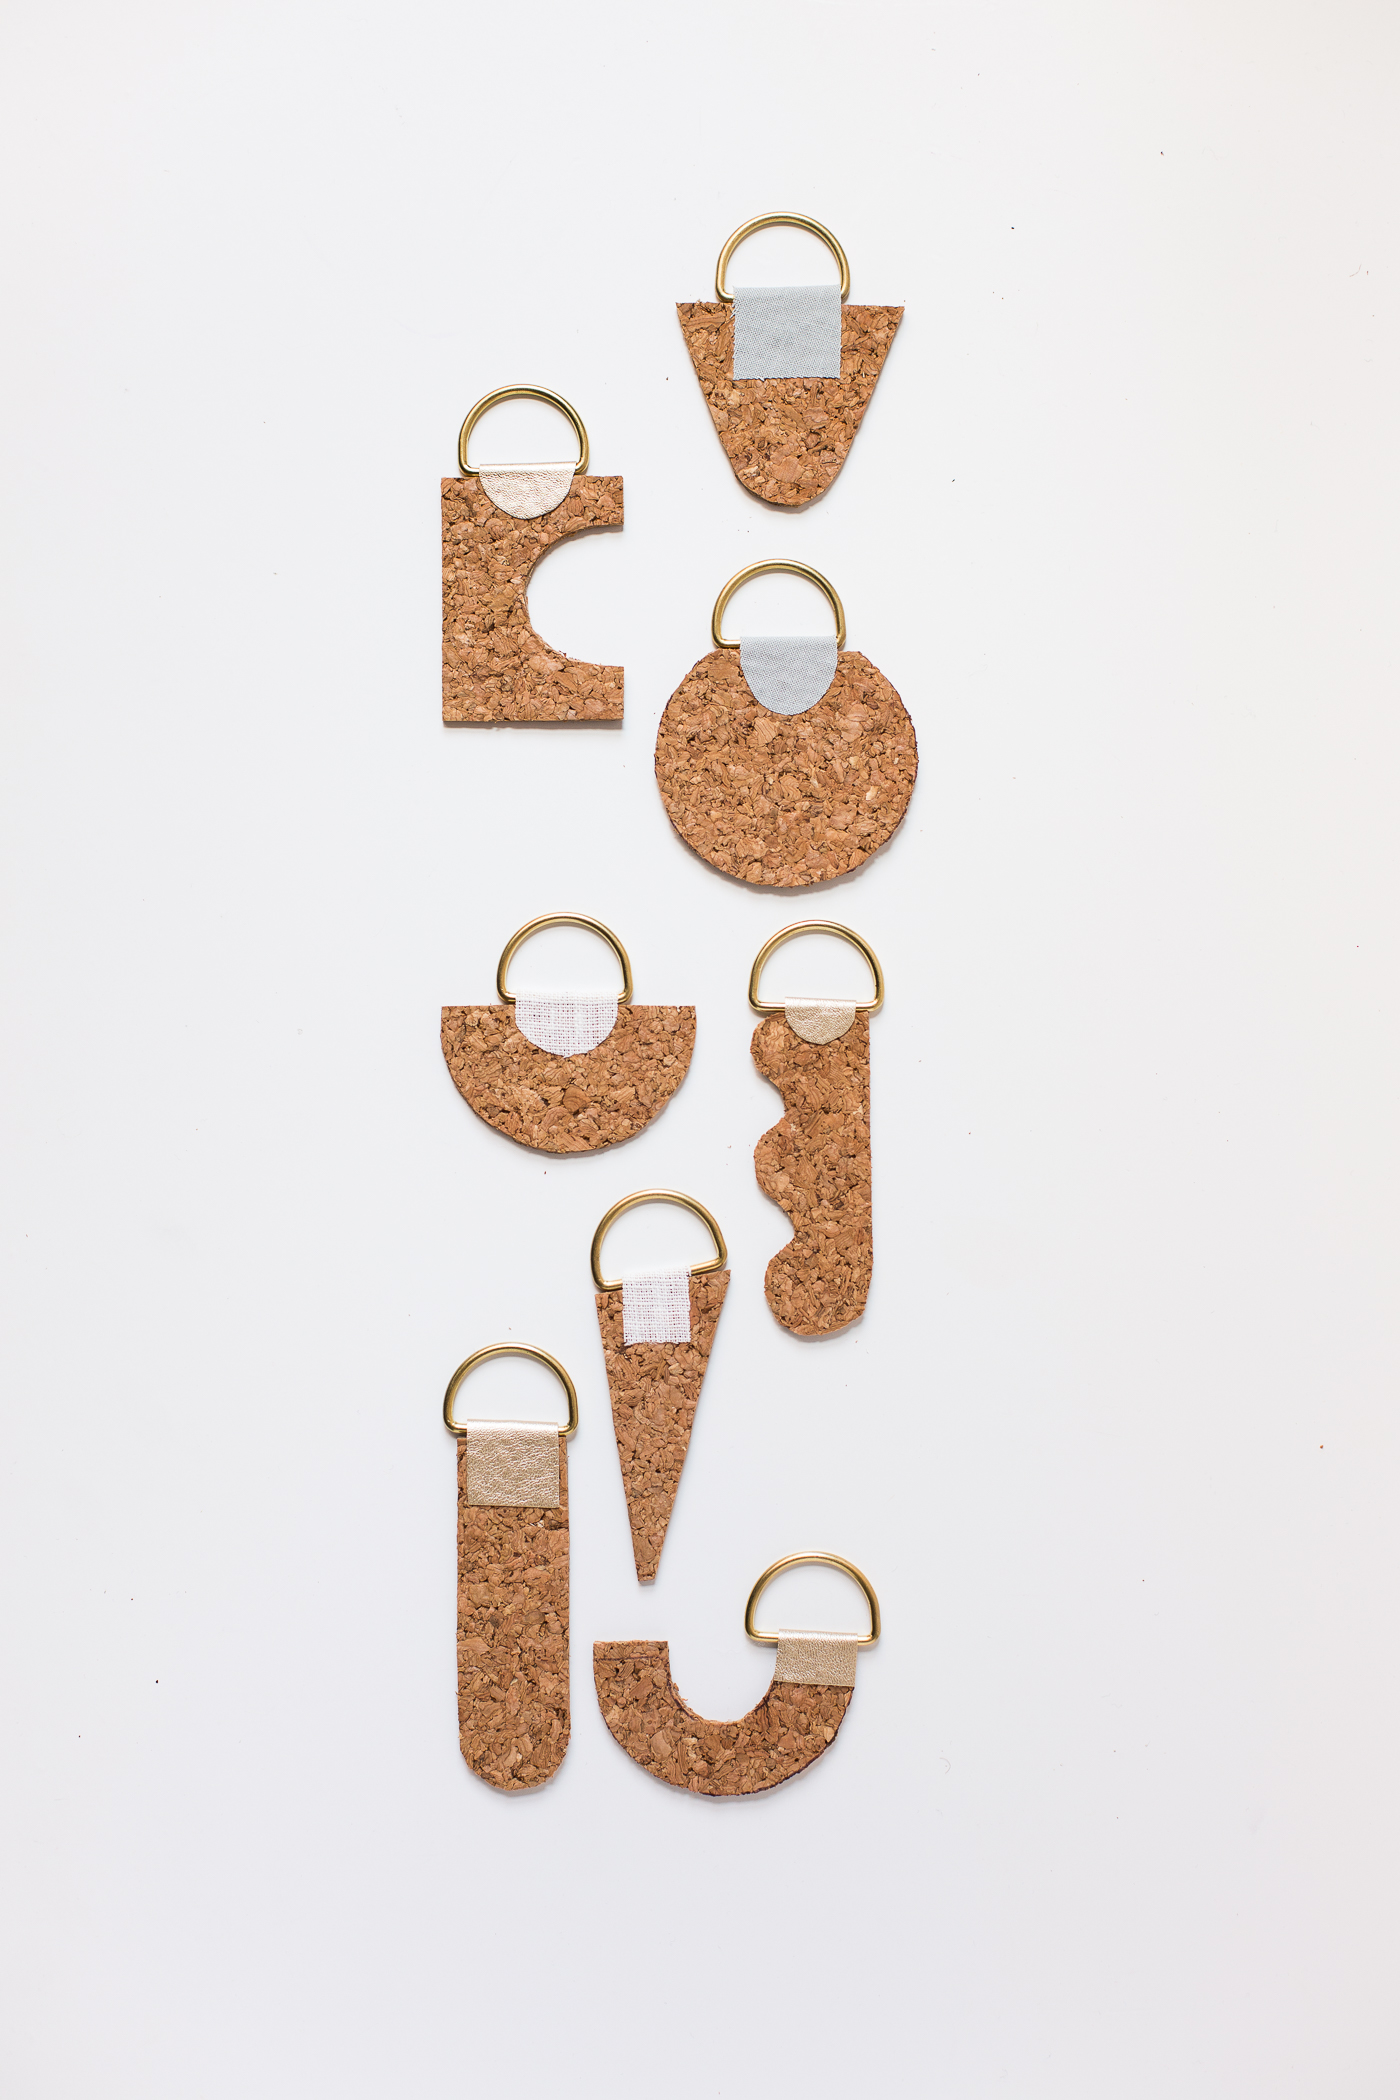 Curate your Keychain with these DIY Contemporary Cork Keyrings | @fallfordiy